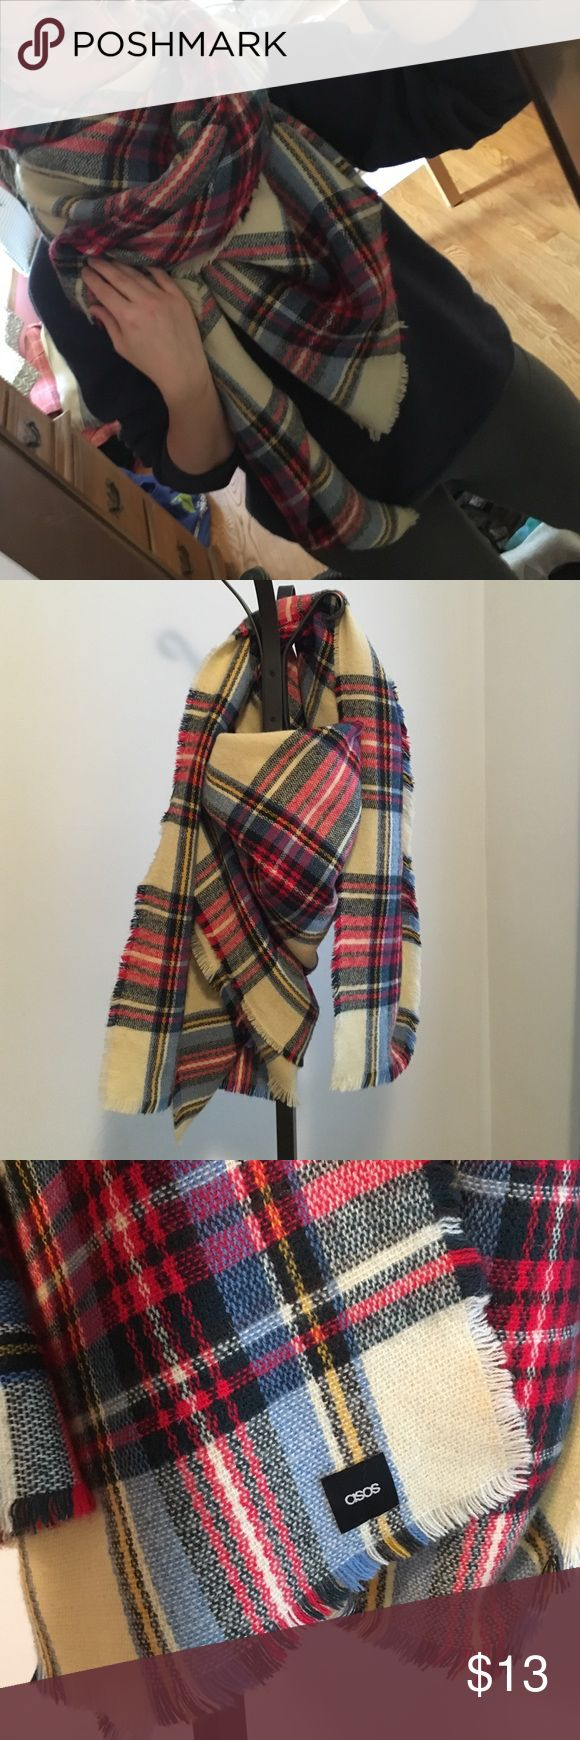 ASOS Blanket Scarf Plaid Square Luxurious large blanket scarf. Super soft. Fringe detail. Washable. Too big to pack on my move! ASOS Accessories Scarves & Wraps